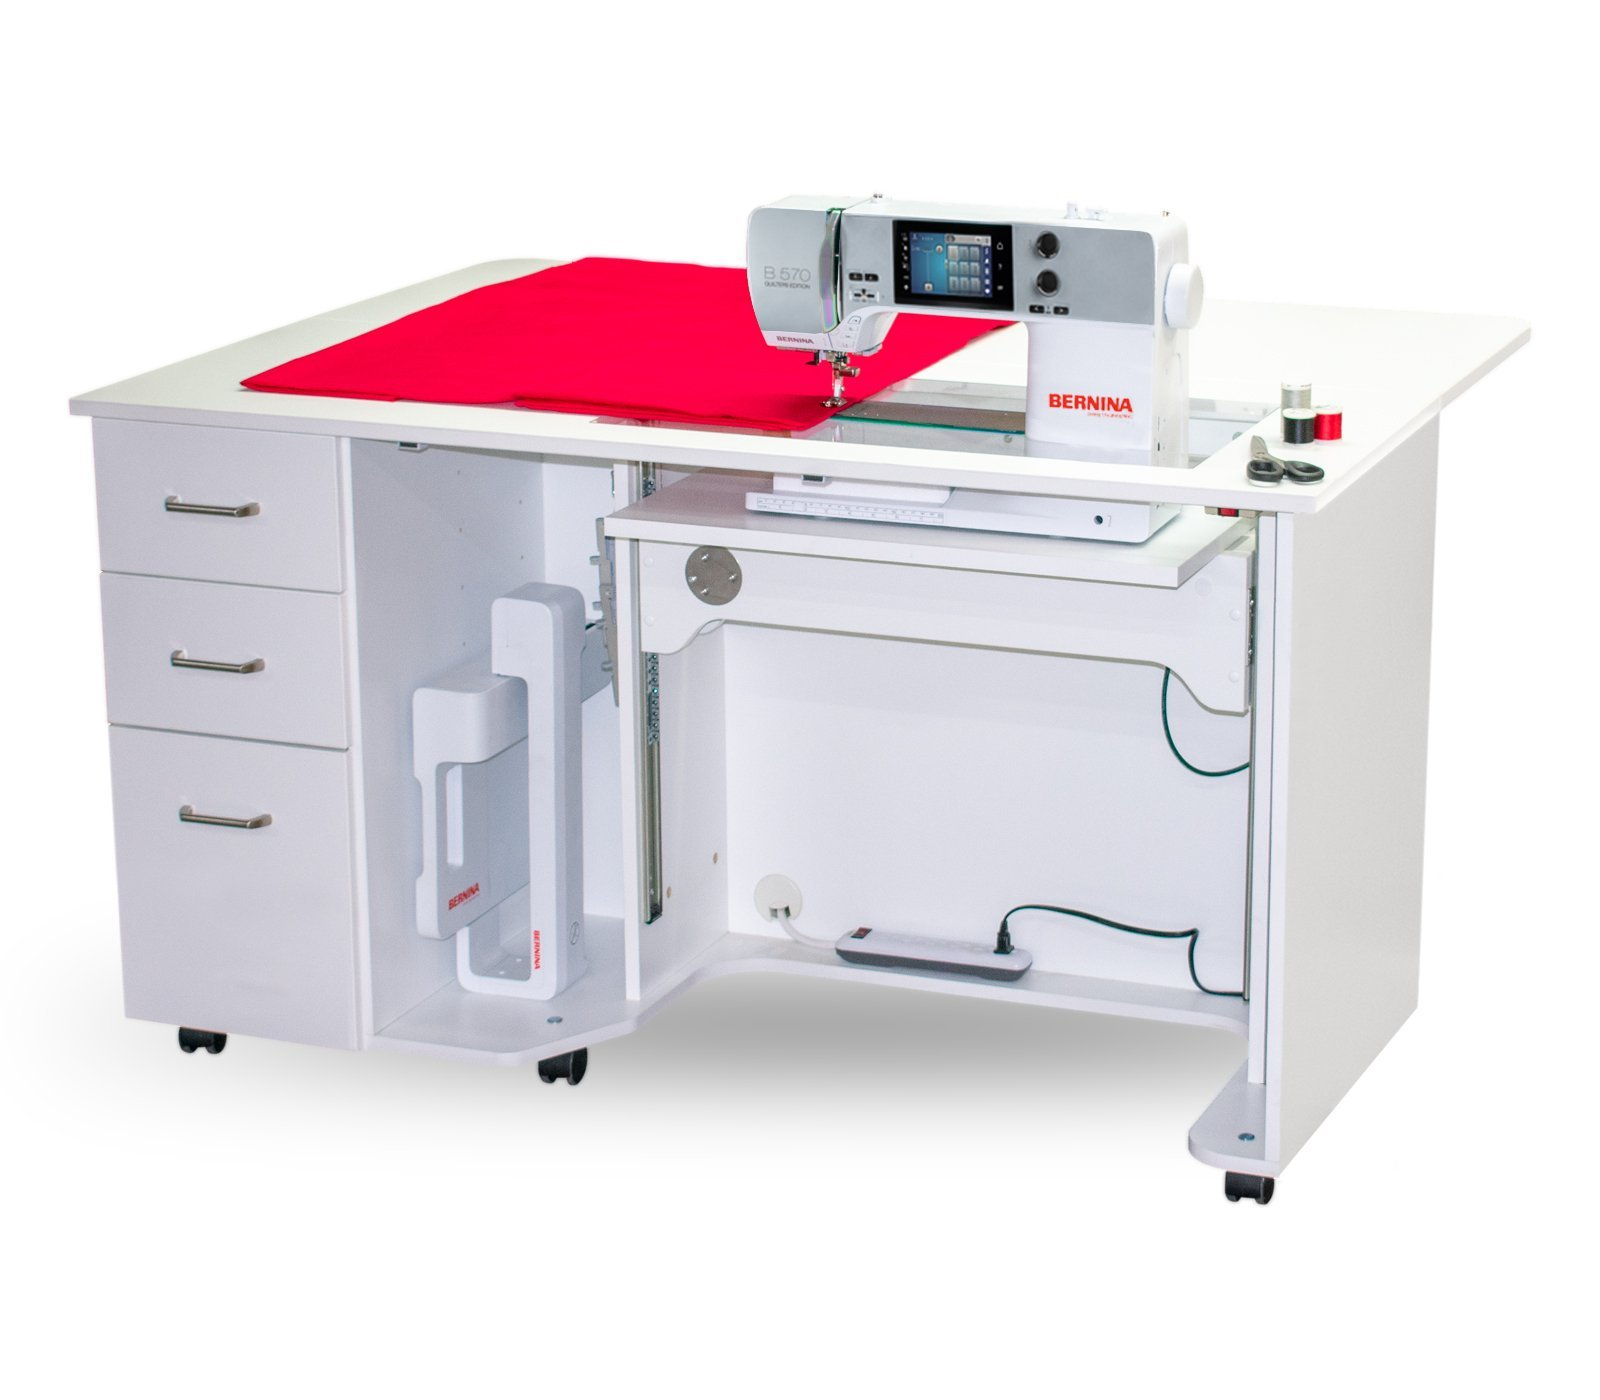 Bernina Sewing Table | Studio Horn 5/4 Series - White add shipping